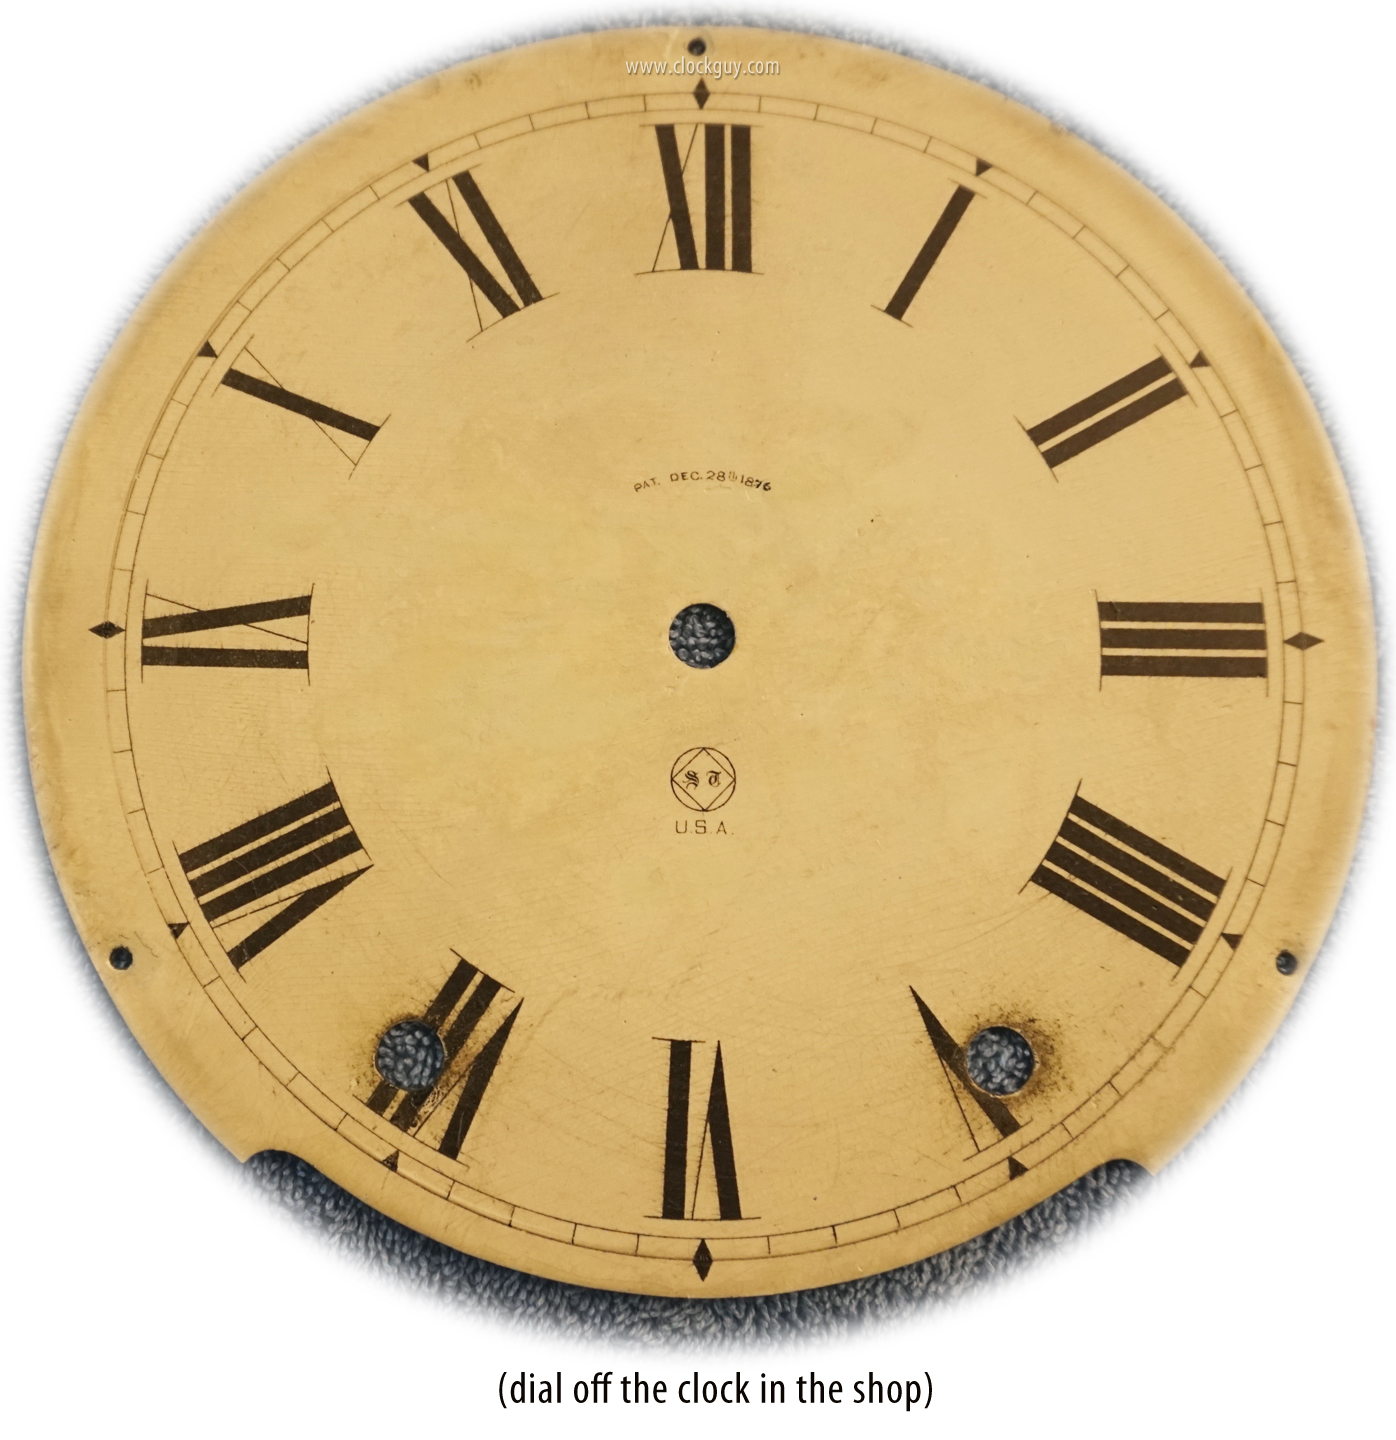 antique clocks guy we bring antique clocks collectors and buyers